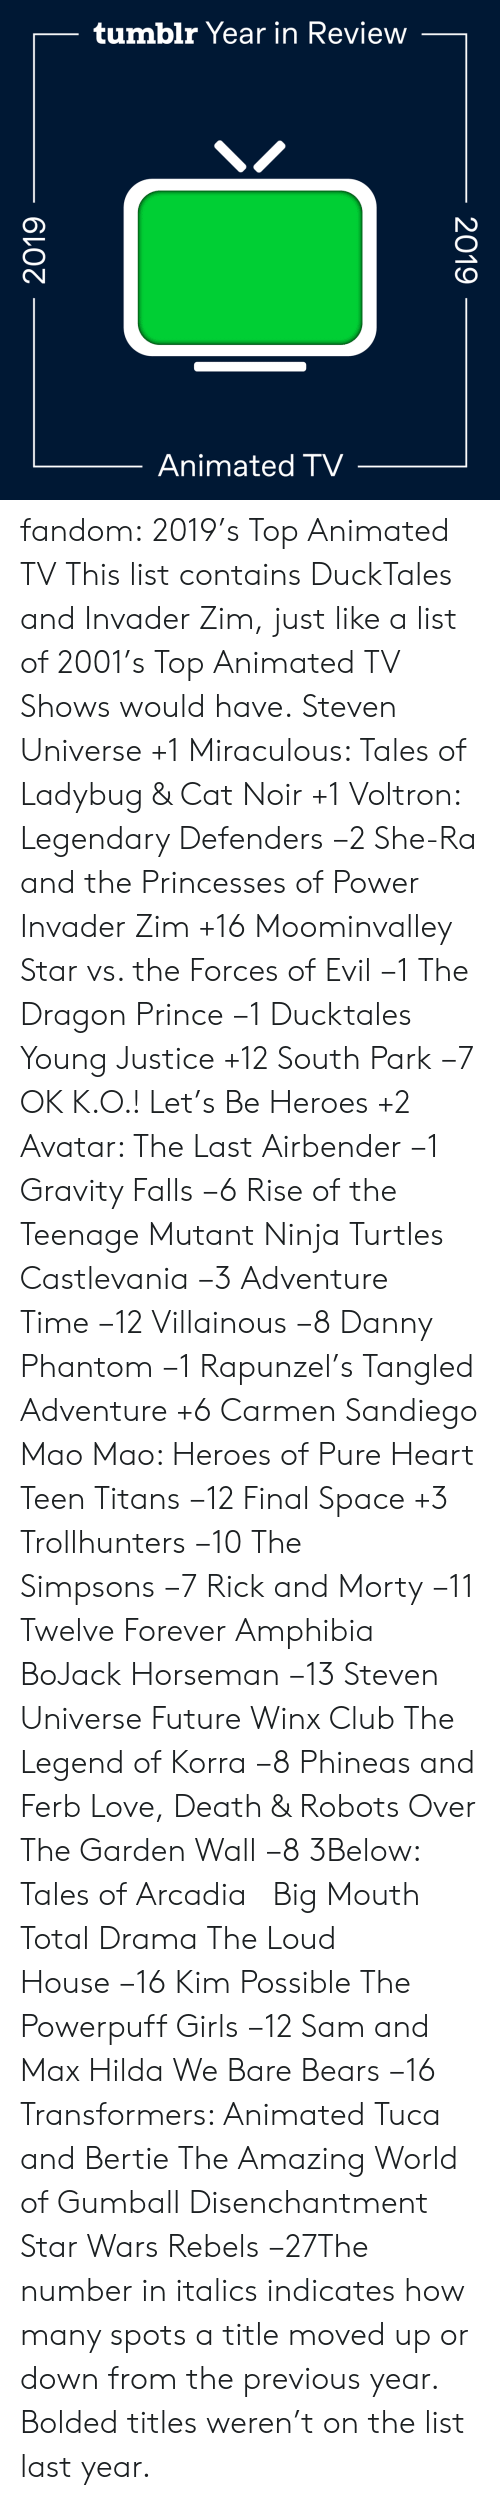 Moved: tumblr Year in Review  Animated TV  2019  2019 fandom:  2019's Top Animated TV  This list contains DuckTales and Invader Zim, just like a list of 2001's Top Animated TV Shows would have.  Steven Universe +1  Miraculous: Tales of Ladybug & Cat Noir +1  Voltron: Legendary Defenders −2  She-Ra and the Princesses of Power   Invader Zim +16  Moominvalley  Star vs. the Forces of Evil −1  The Dragon Prince −1  Ducktales  Young Justice +12  South Park −7  OK K.O.! Let's Be Heroes +2  Avatar: The Last Airbender −1  Gravity Falls −6  Rise of the Teenage Mutant Ninja Turtles  Castlevania −3  Adventure Time −12  Villainous −8  Danny Phantom −1  Rapunzel's Tangled Adventure +6  Carmen Sandiego  Mao Mao: Heroes of Pure Heart  Teen Titans −12  Final Space +3  Trollhunters −10  The Simpsons −7  Rick and Morty −11  Twelve Forever  Amphibia  BoJack Horseman −13  Steven Universe Future  Winx Club  The Legend of Korra −8  Phineas and Ferb  Love, Death & Robots  Over The Garden Wall −8  3Below: Tales of Arcadia    Big Mouth  Total Drama  The Loud House −16  Kim Possible  The Powerpuff Girls −12  Sam and Max  Hilda  We Bare Bears −16  Transformers: Animated  Tuca and Bertie  The Amazing World of Gumball  Disenchantment Star Wars Rebels −27The number in italics indicates how many spots a title moved up or down from the previous year. Bolded titles weren't on the list last year.